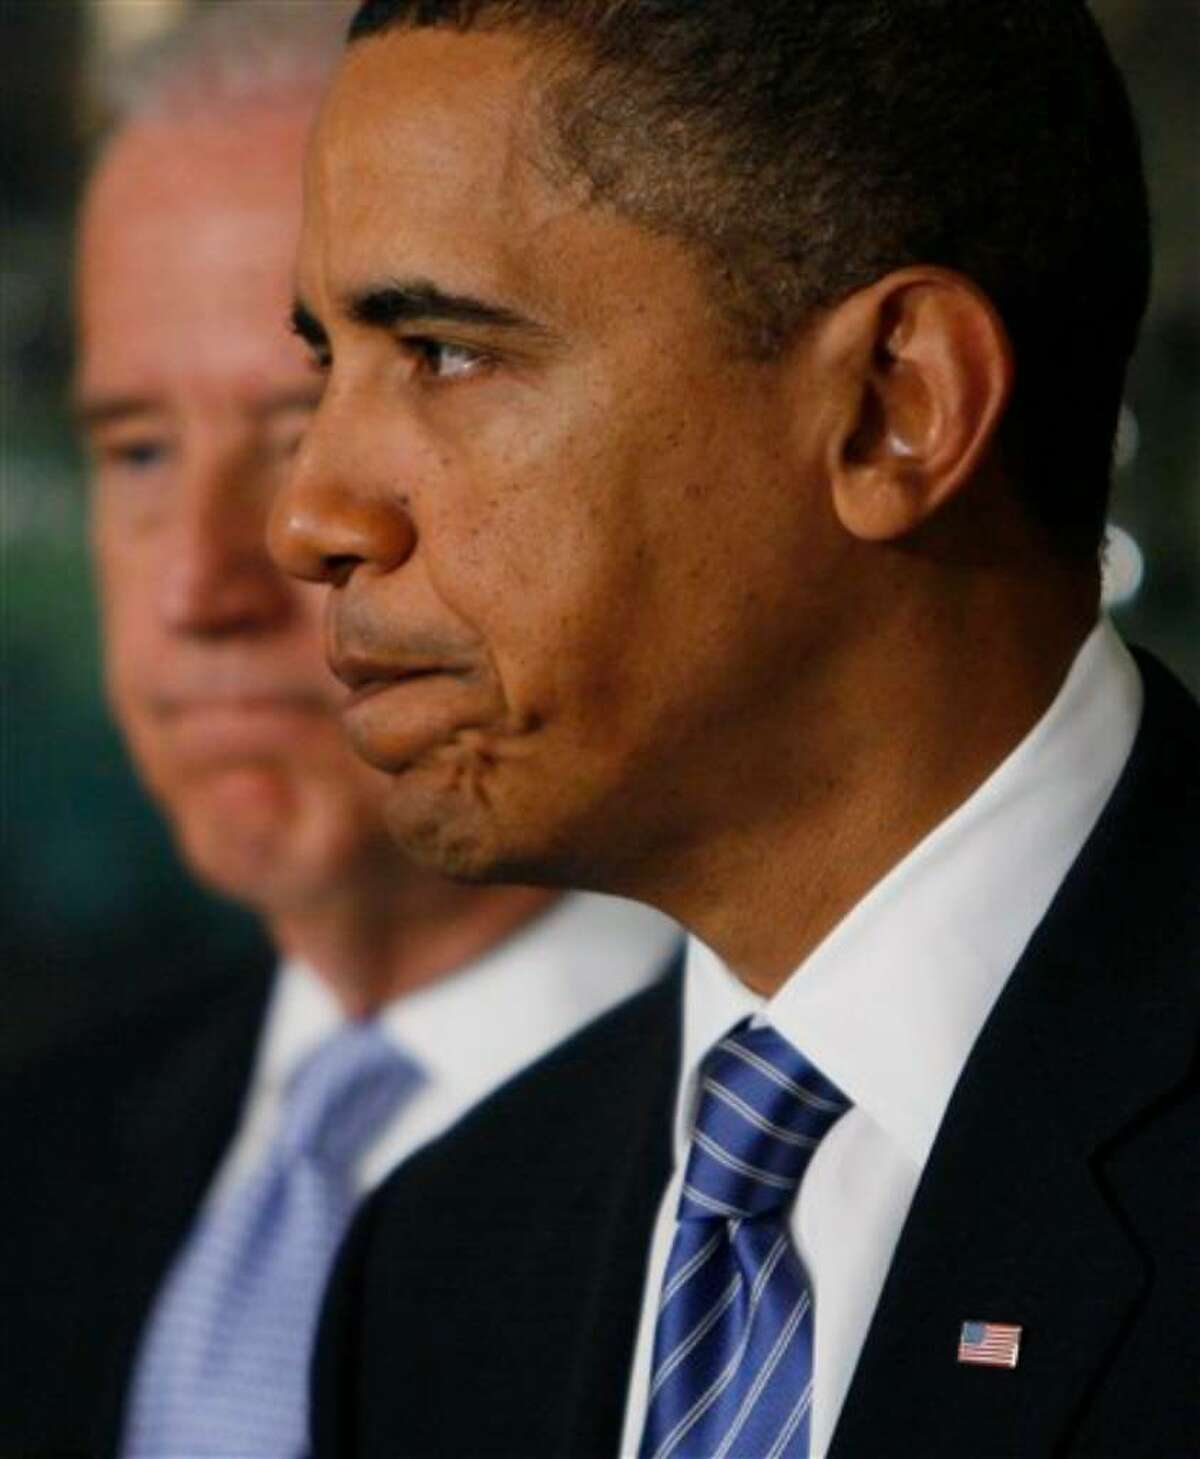 President Barack Obama stands with Vice President Joe Biden as he makes a statement about the earthquake in Haiti,Thursday, Jan. 14, 2010, at the White House in Washington. (AP Photo/Charles Dharapak)